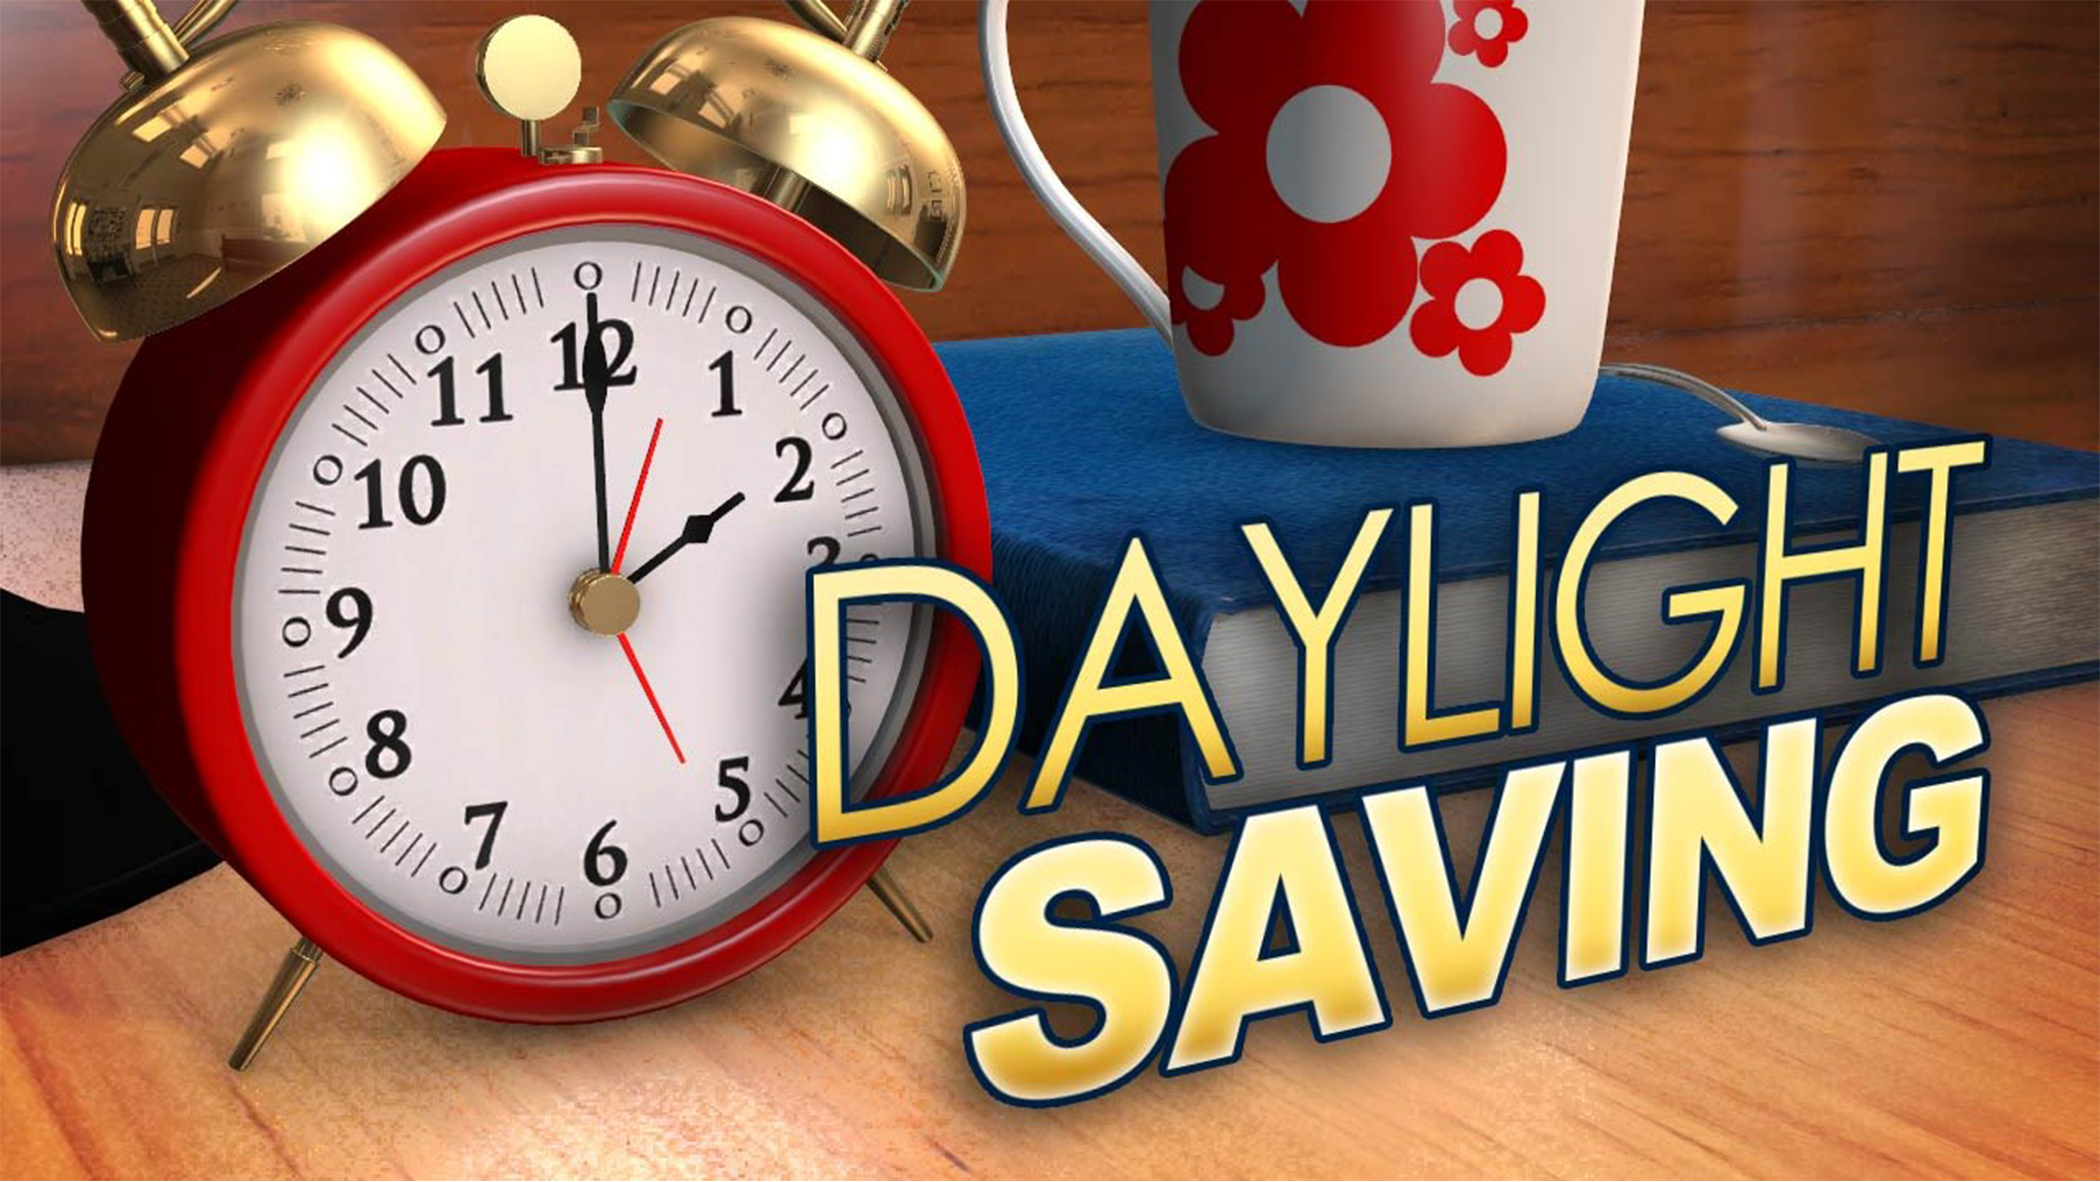 daylight-savings_1540833220538.jpg